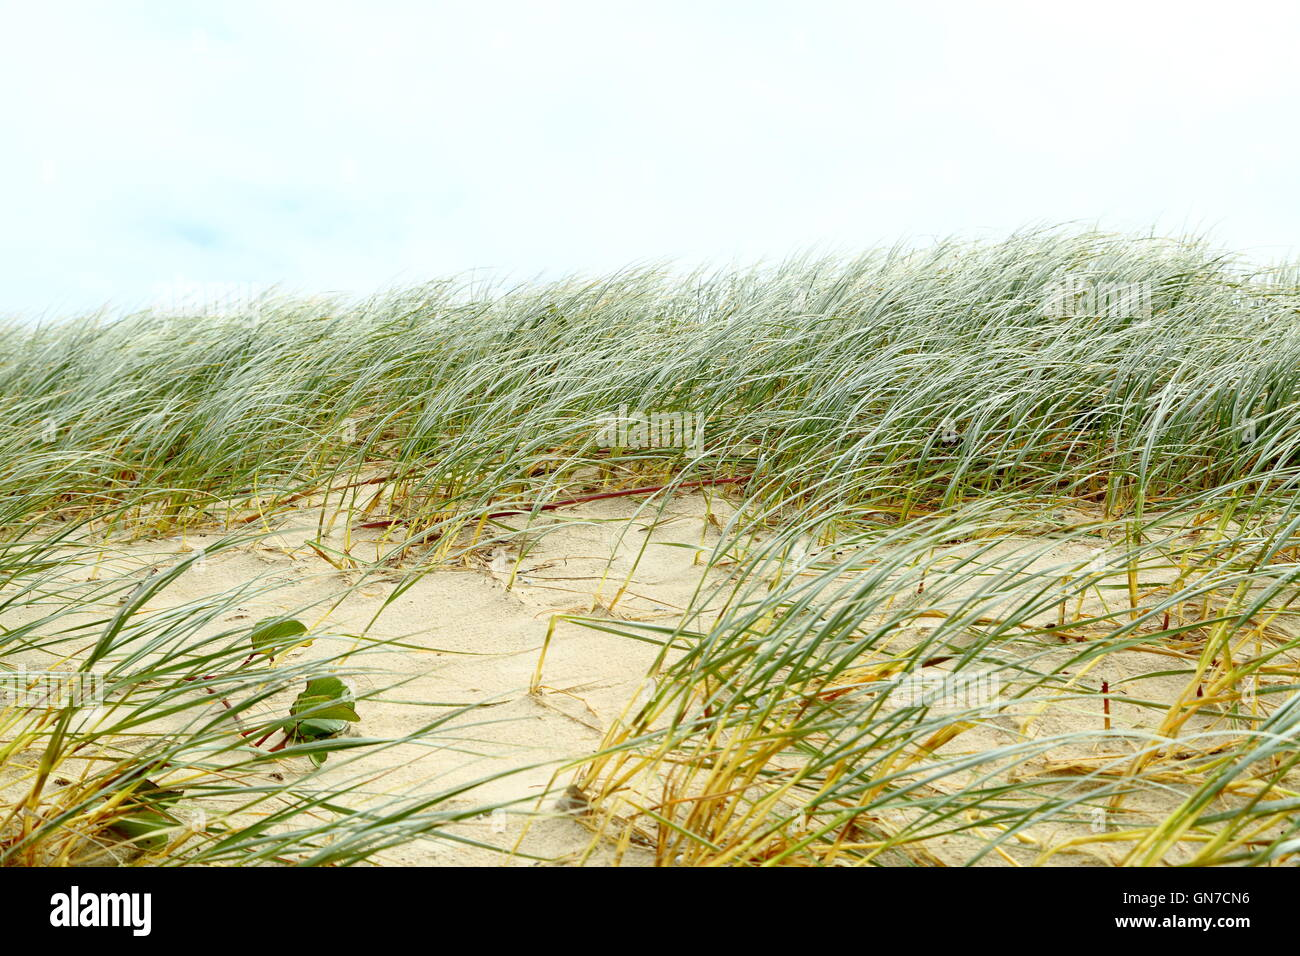 Sand dune grasses wave in a strong wind on a stormy day along the shore near Iluka, New South Wales, Australia. - Stock Image